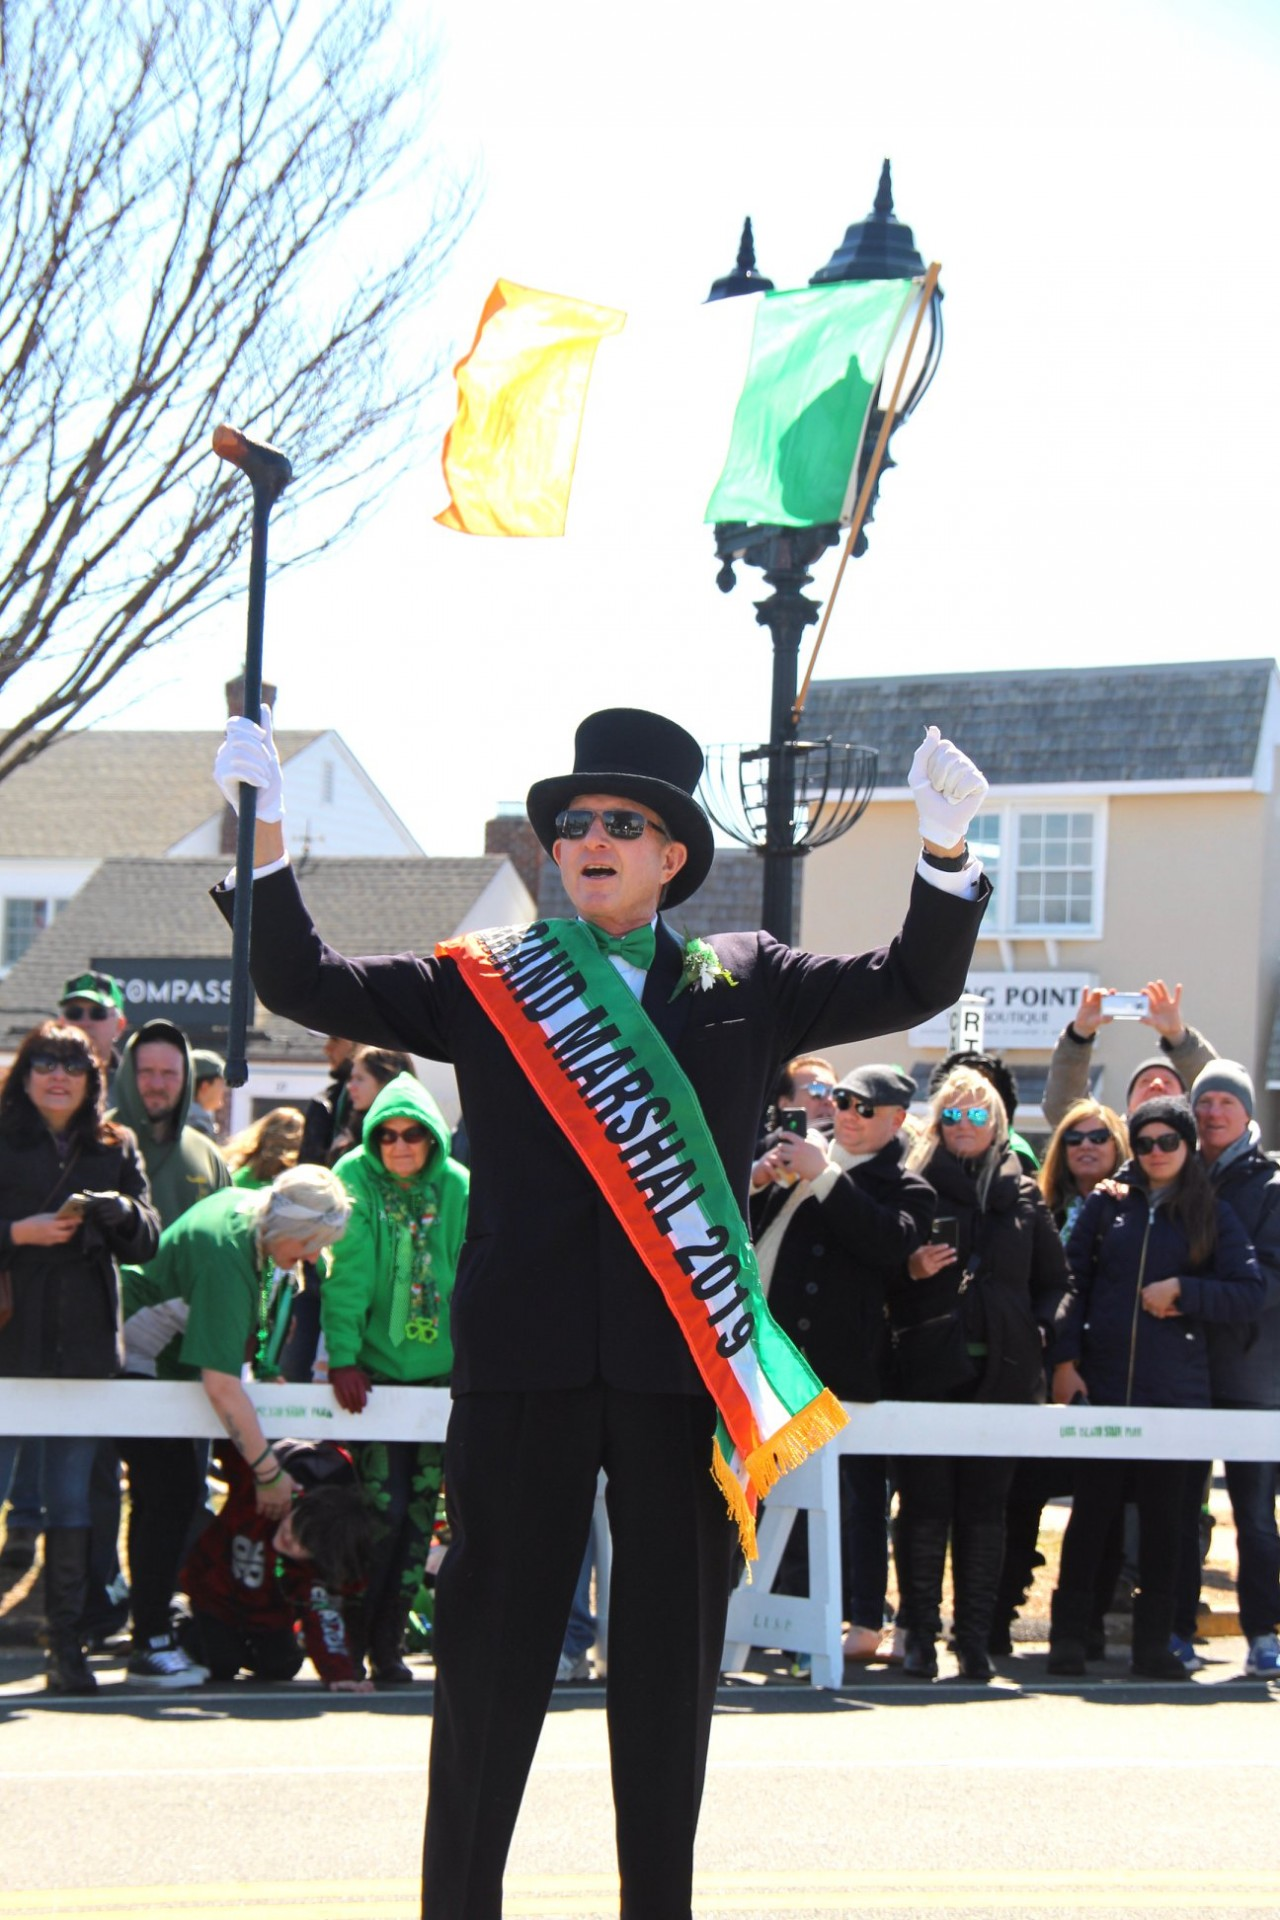 Grand Marshal of St. Patrick's Parade 2019